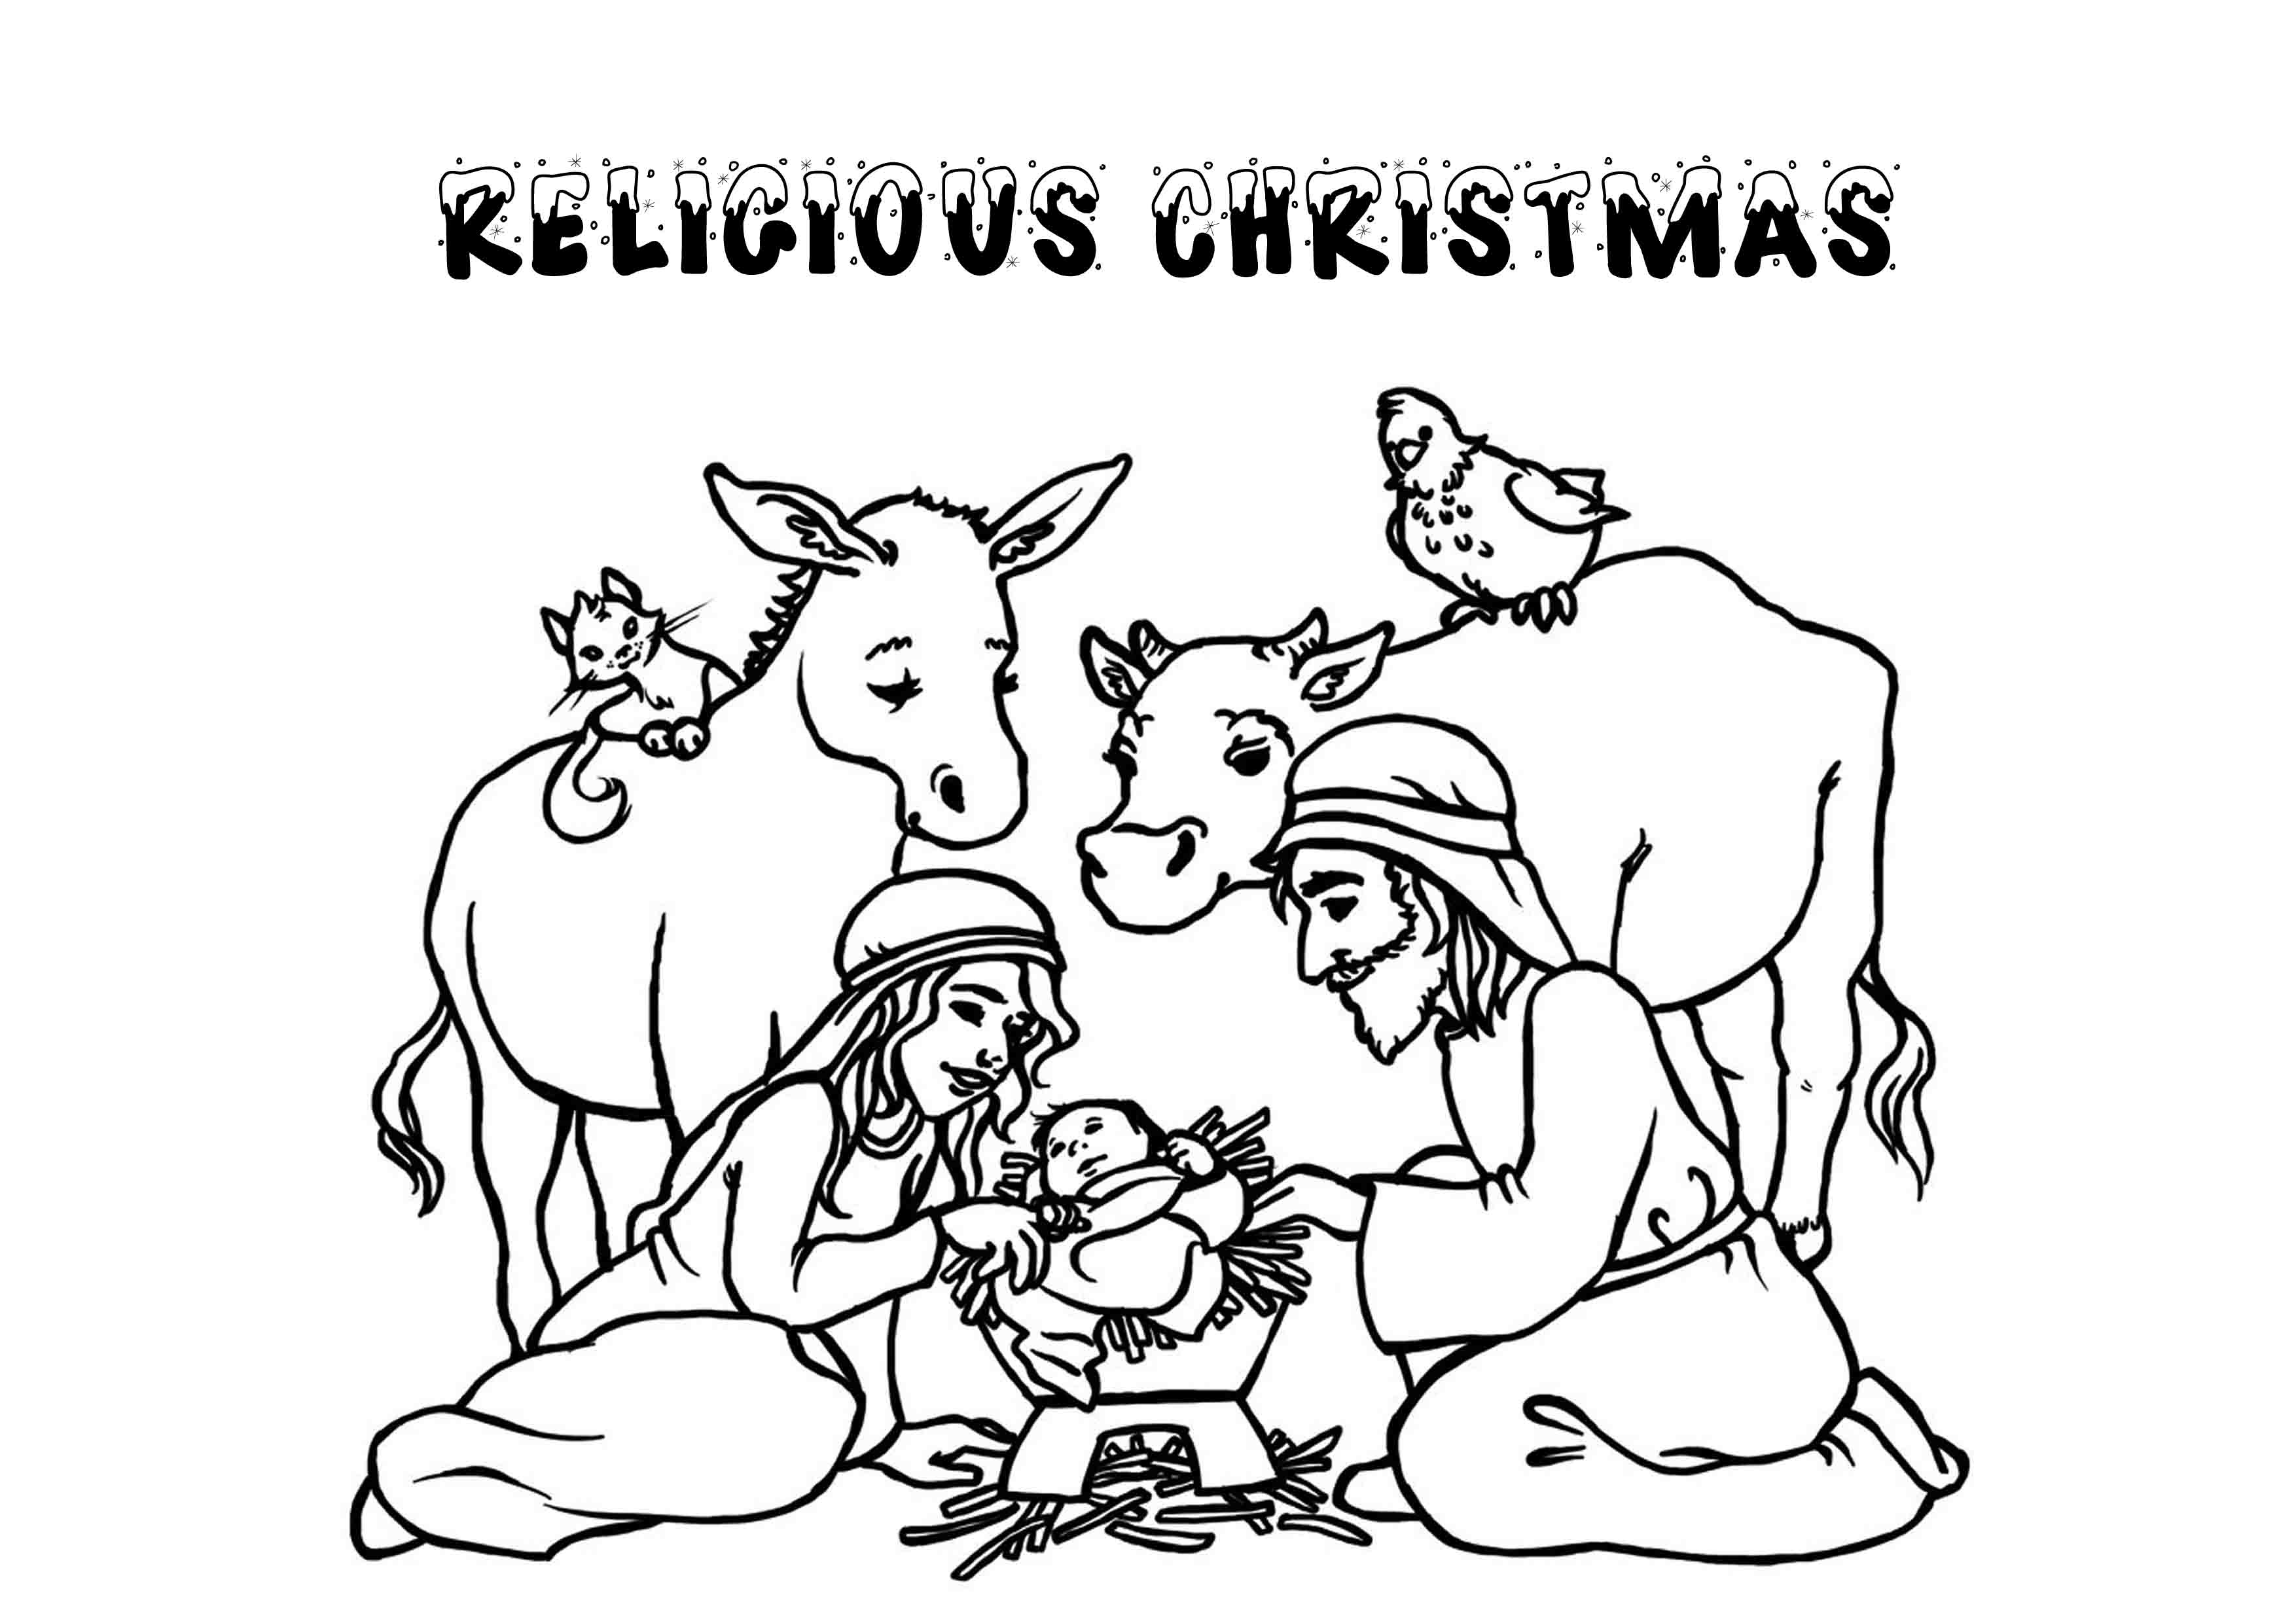 christmas religious coloring pages religious christmas coloring page 19 coloring page free pages christmas coloring religious